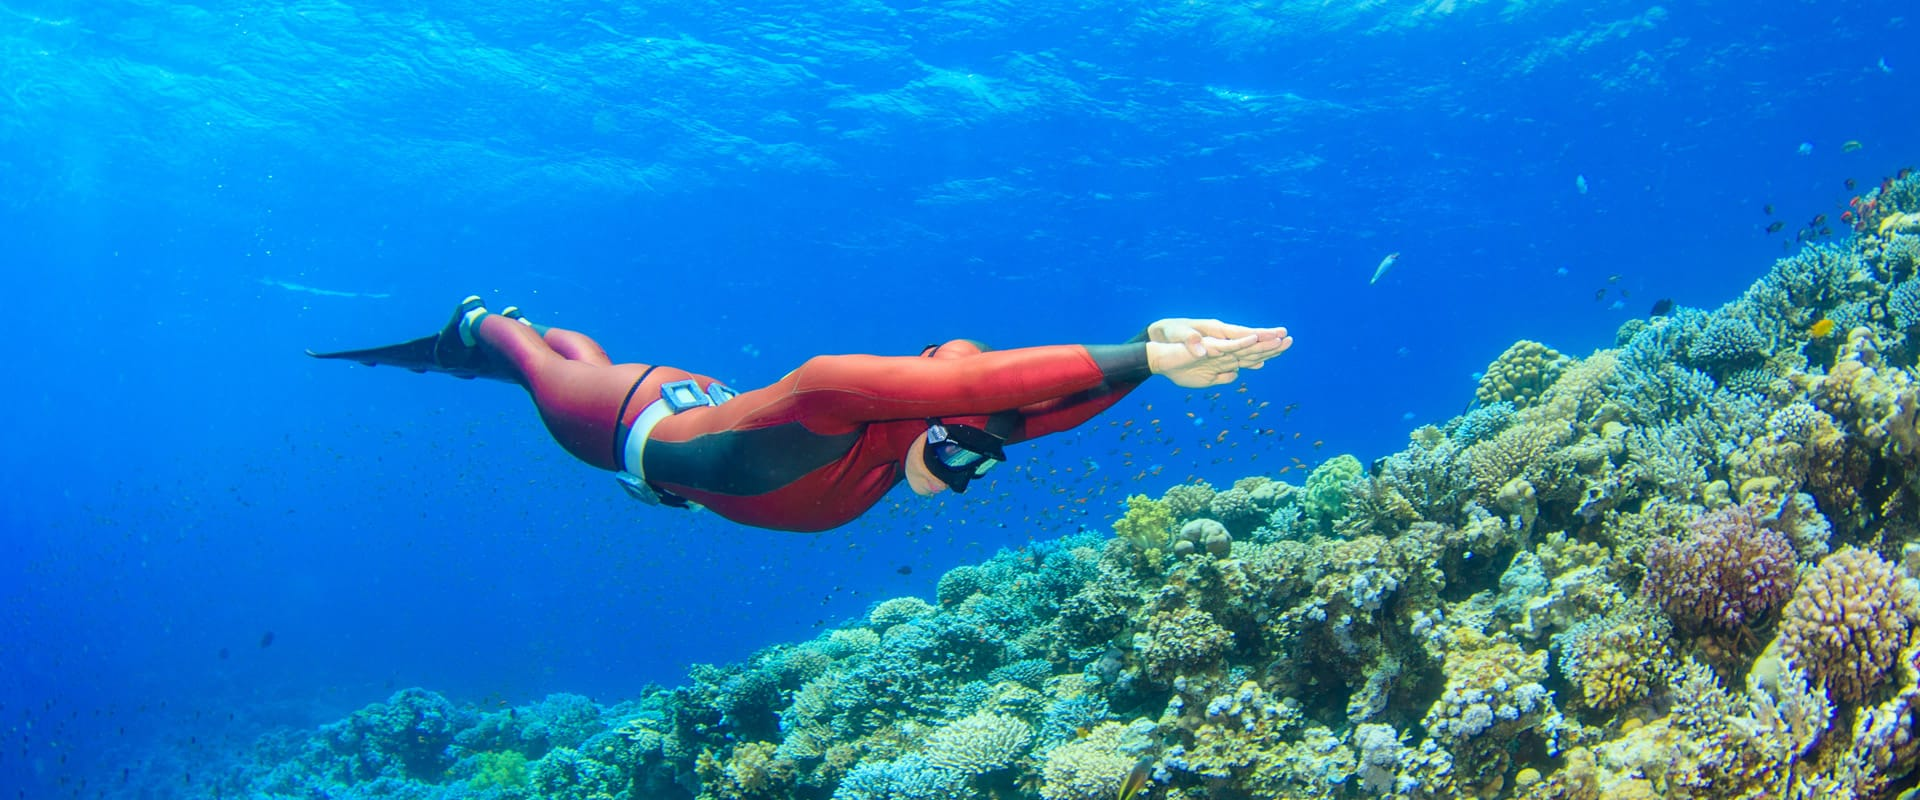 Freediving in Dahab with H2O